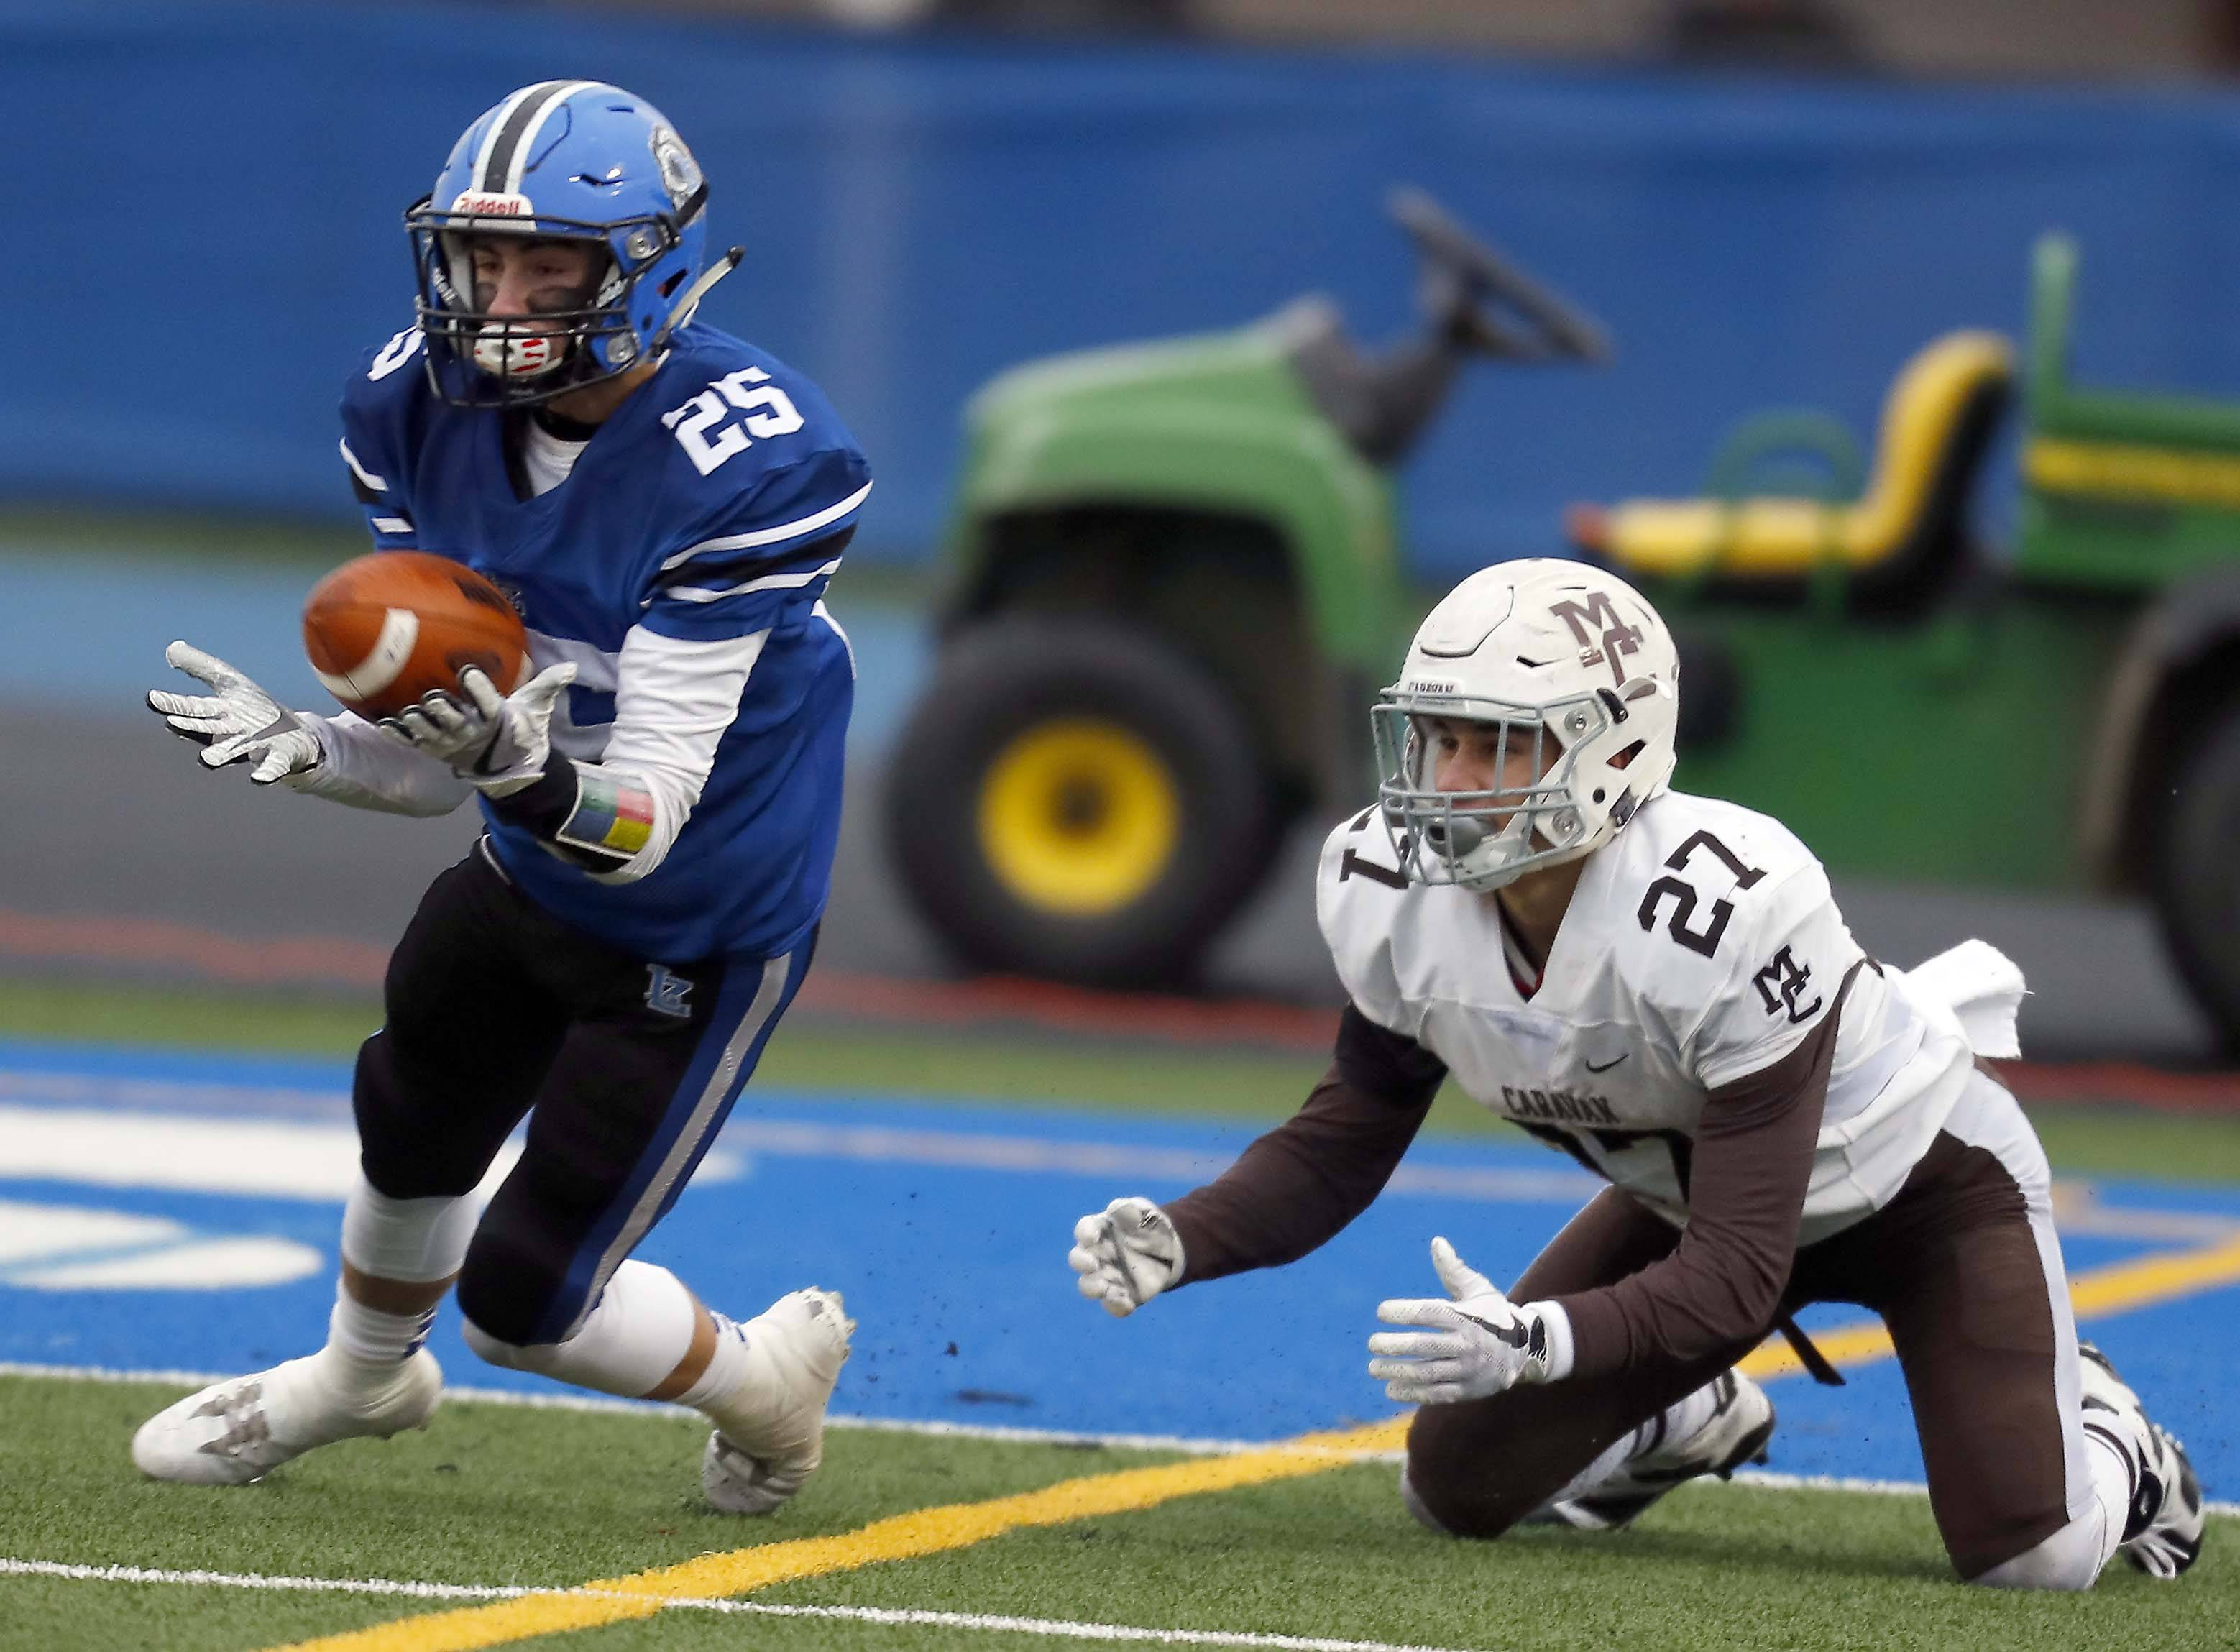 Images: Lake Zurich vs. Mt. Carmel semifinal football